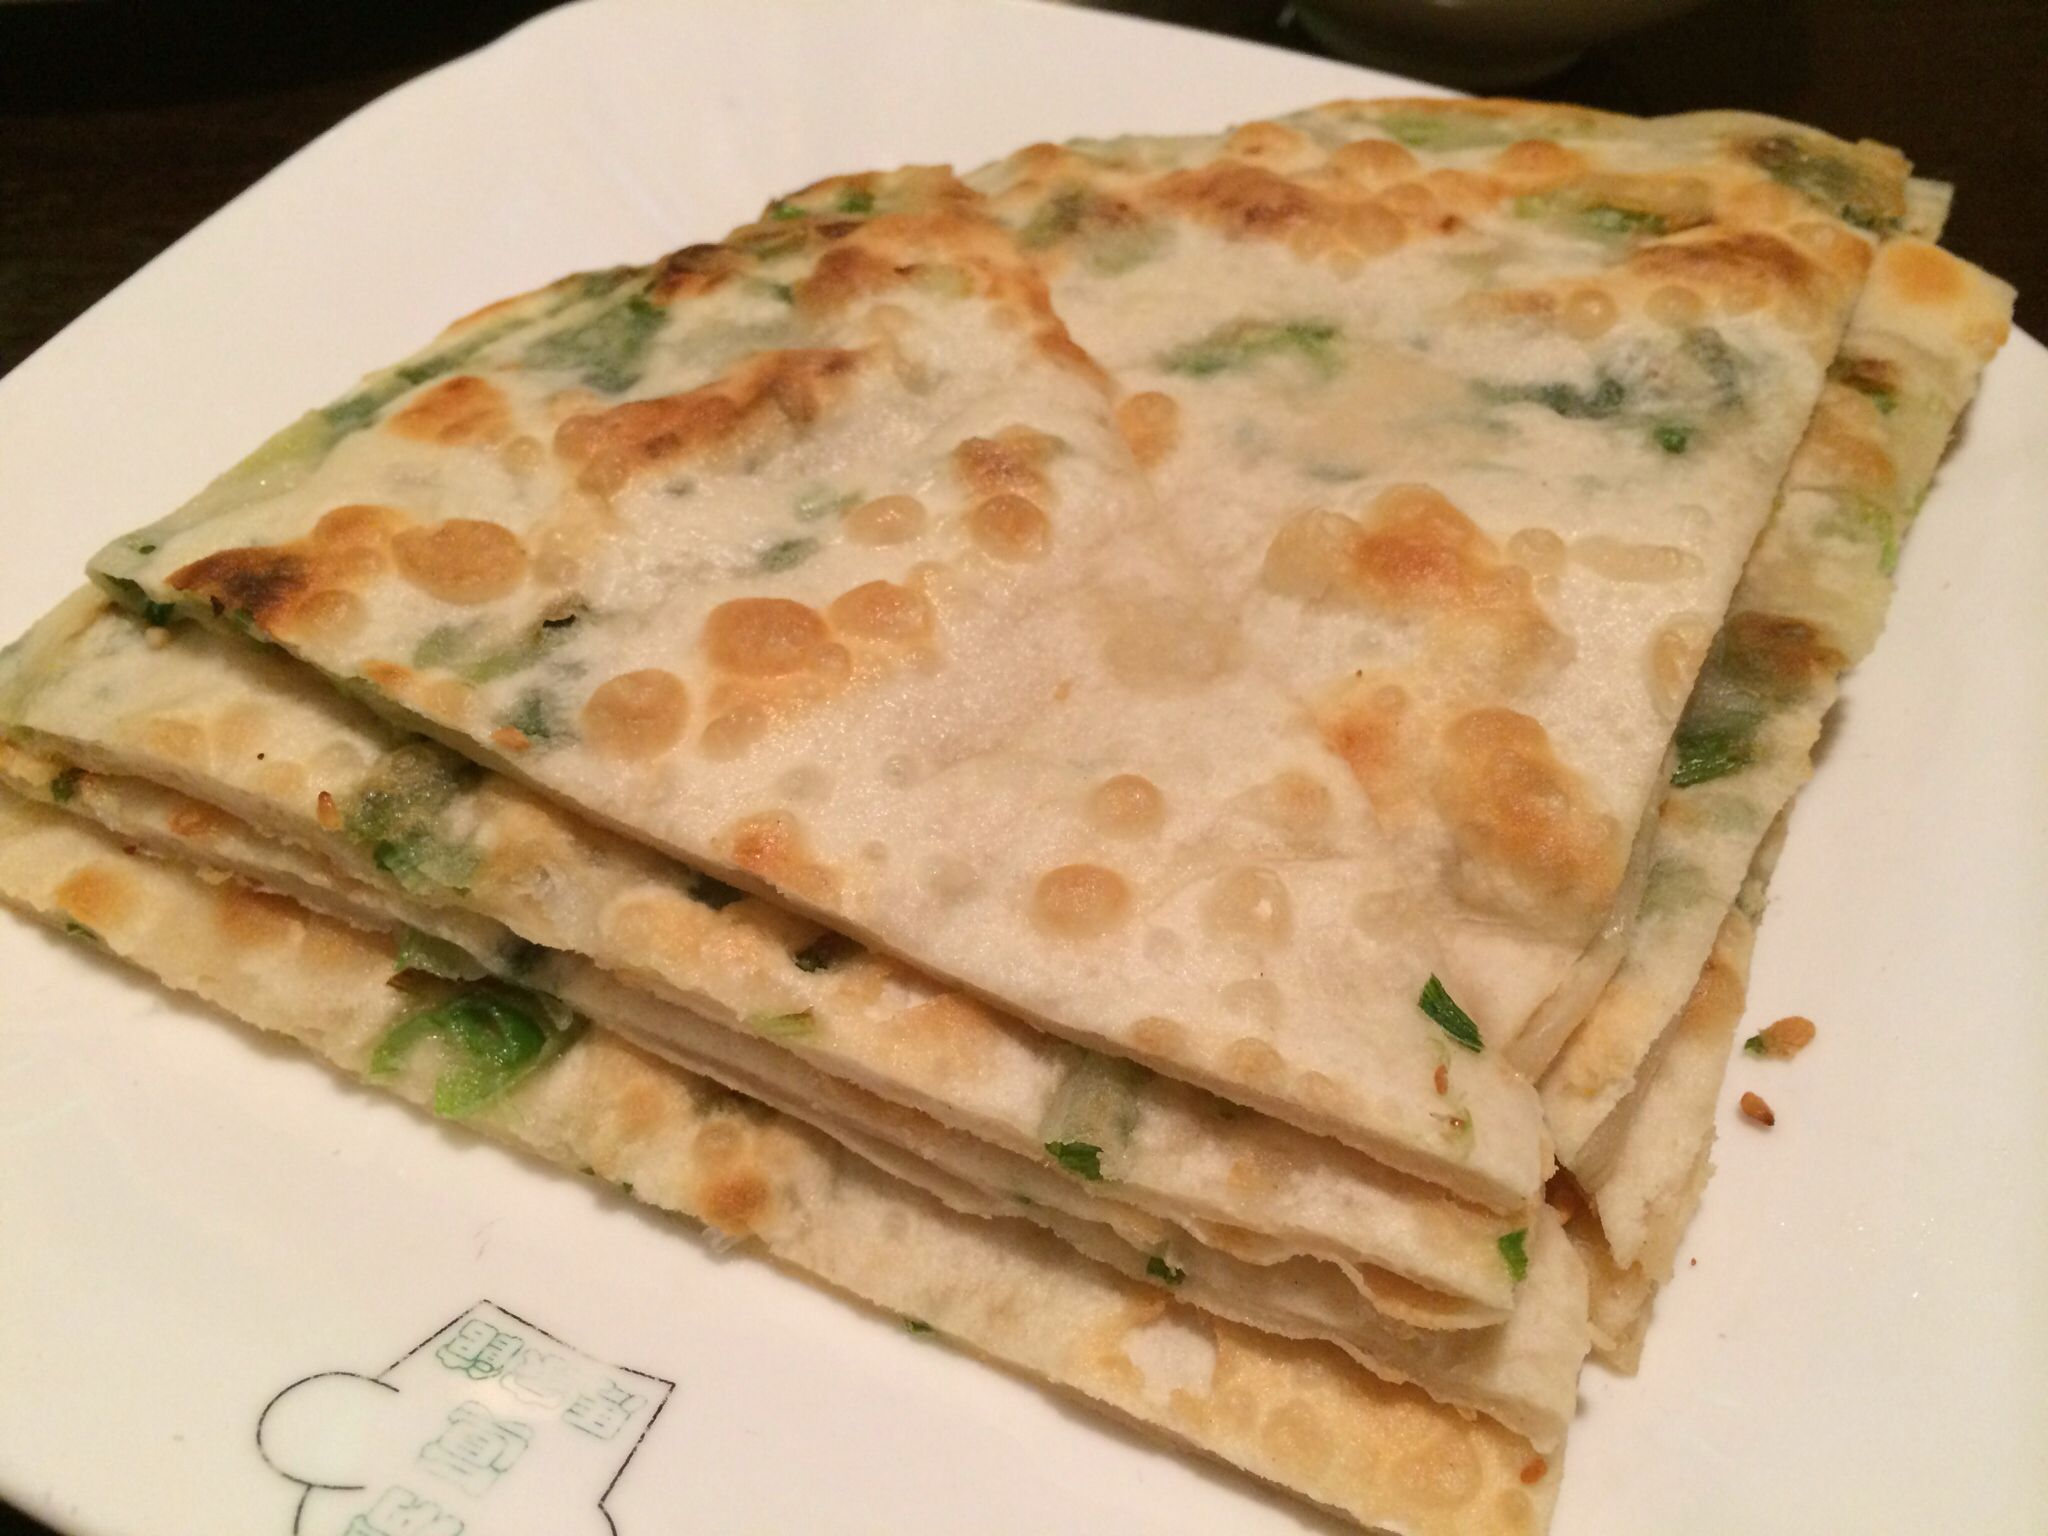 Chinese bread food cheese pizza bread